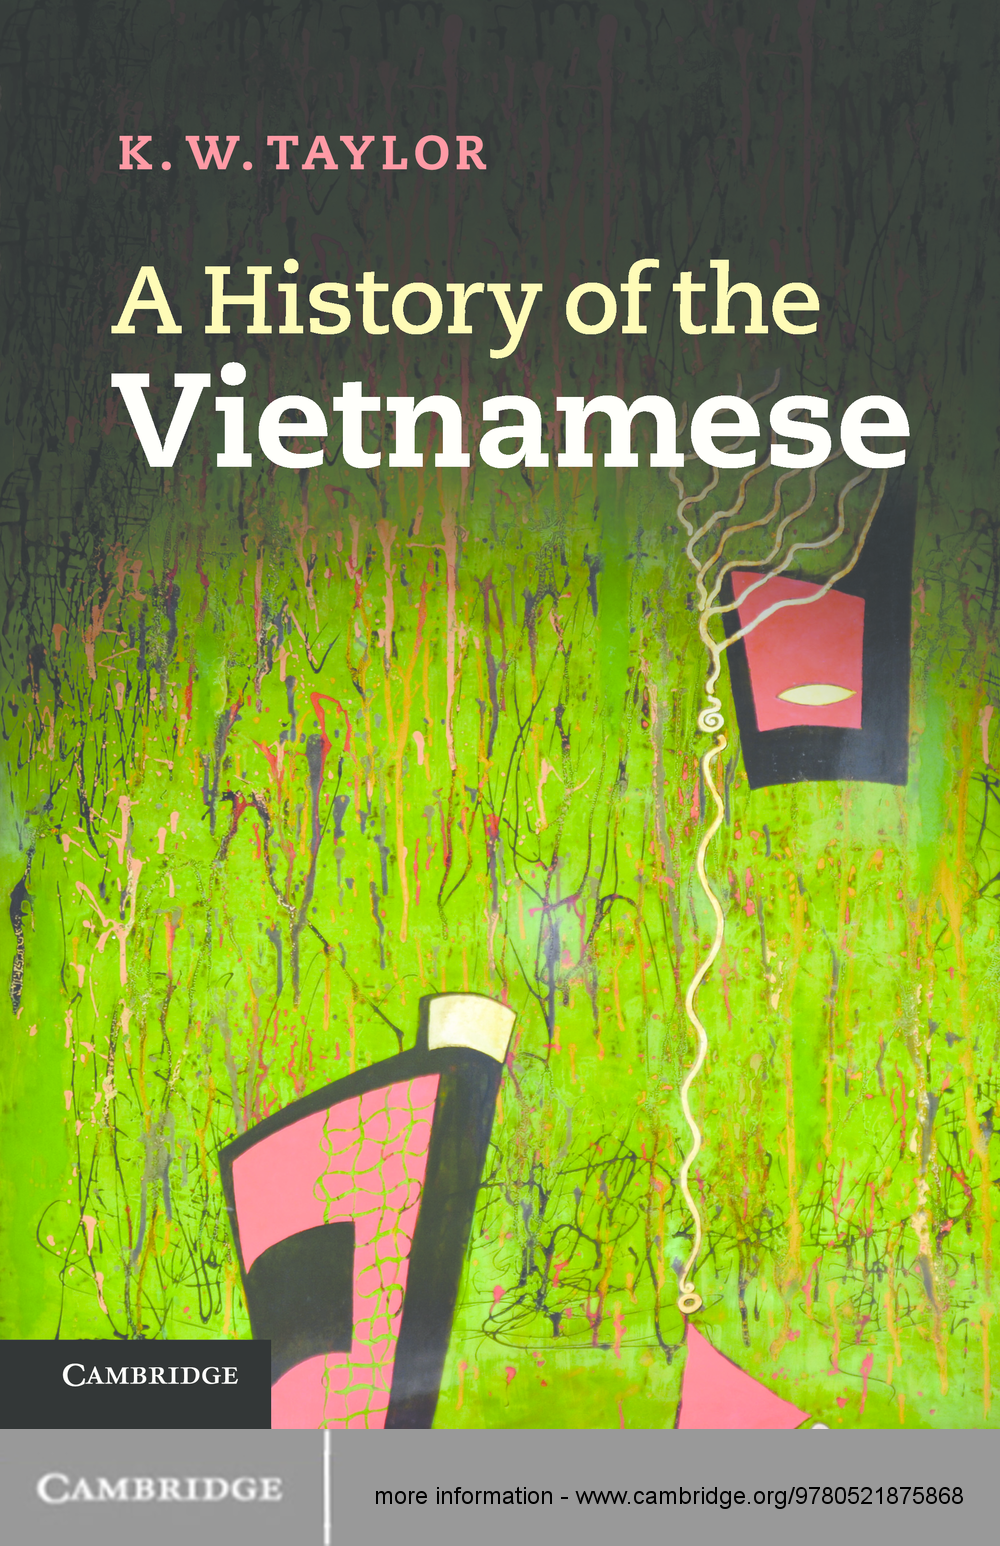 A History of the Vietnamese